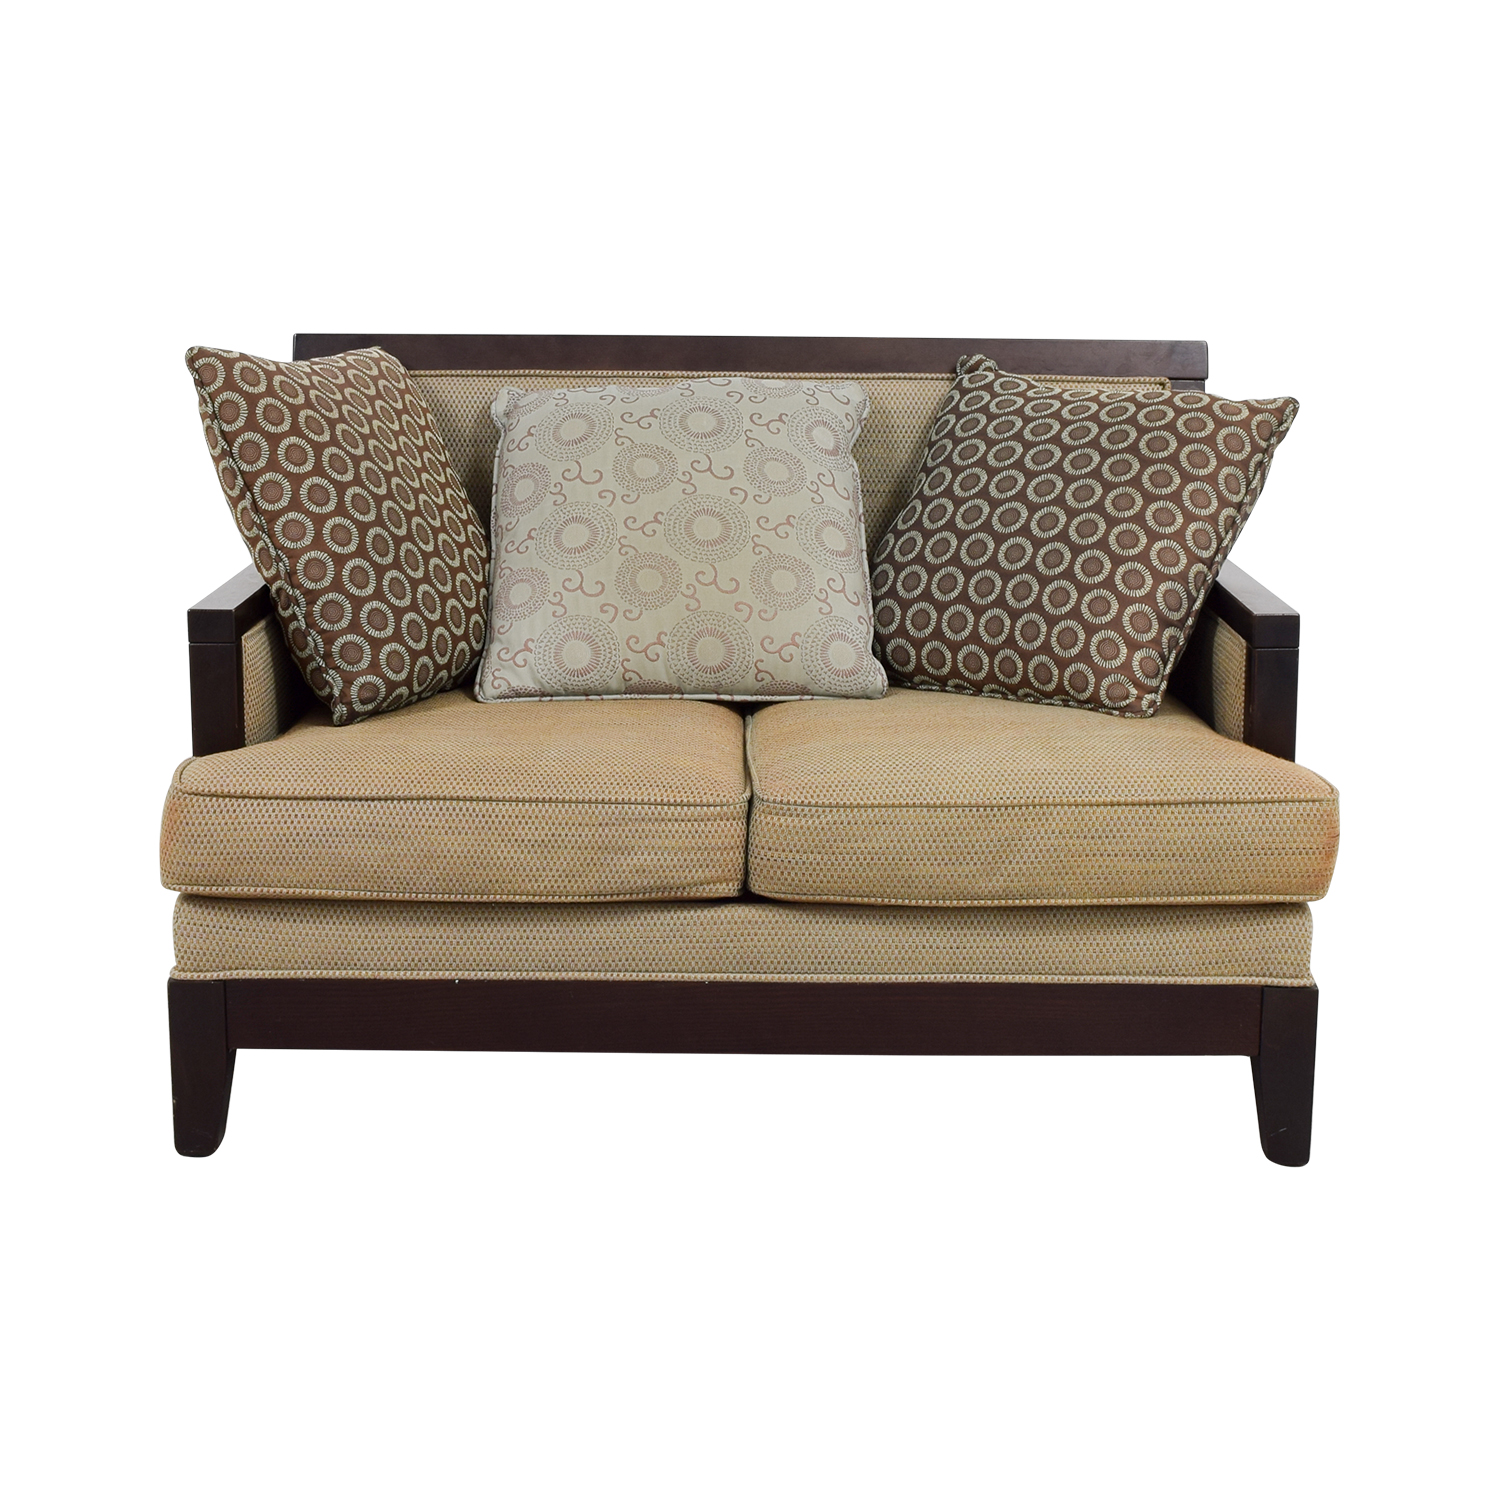 tan with wood frame love seat price - Wood Frame Loveseat